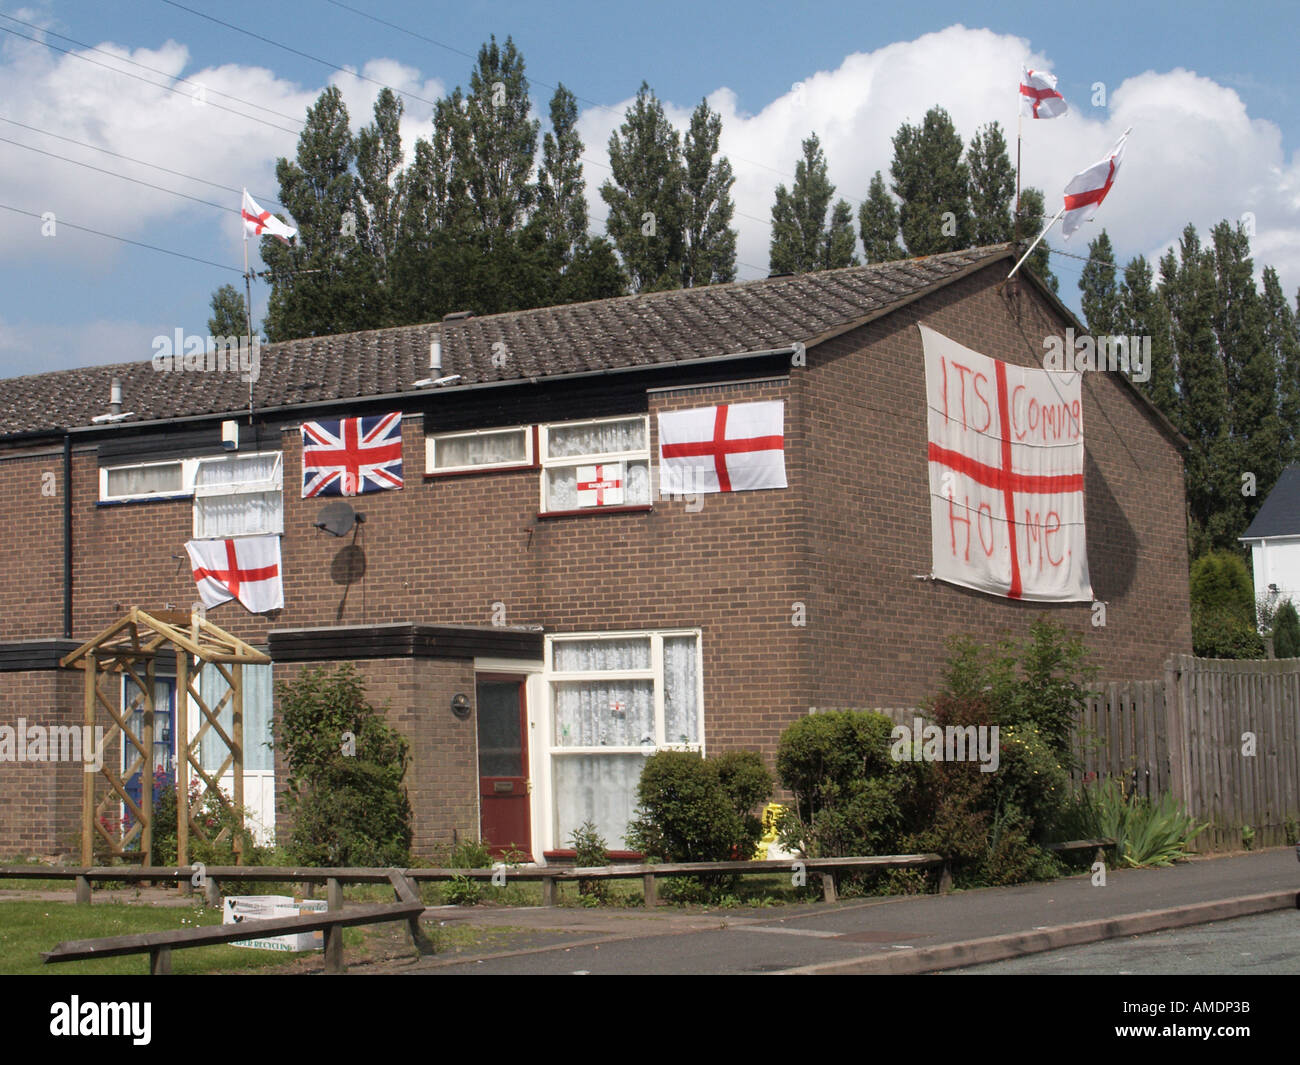 Bournville Birmingham England football fans house decorated during World Cup - Stock Image